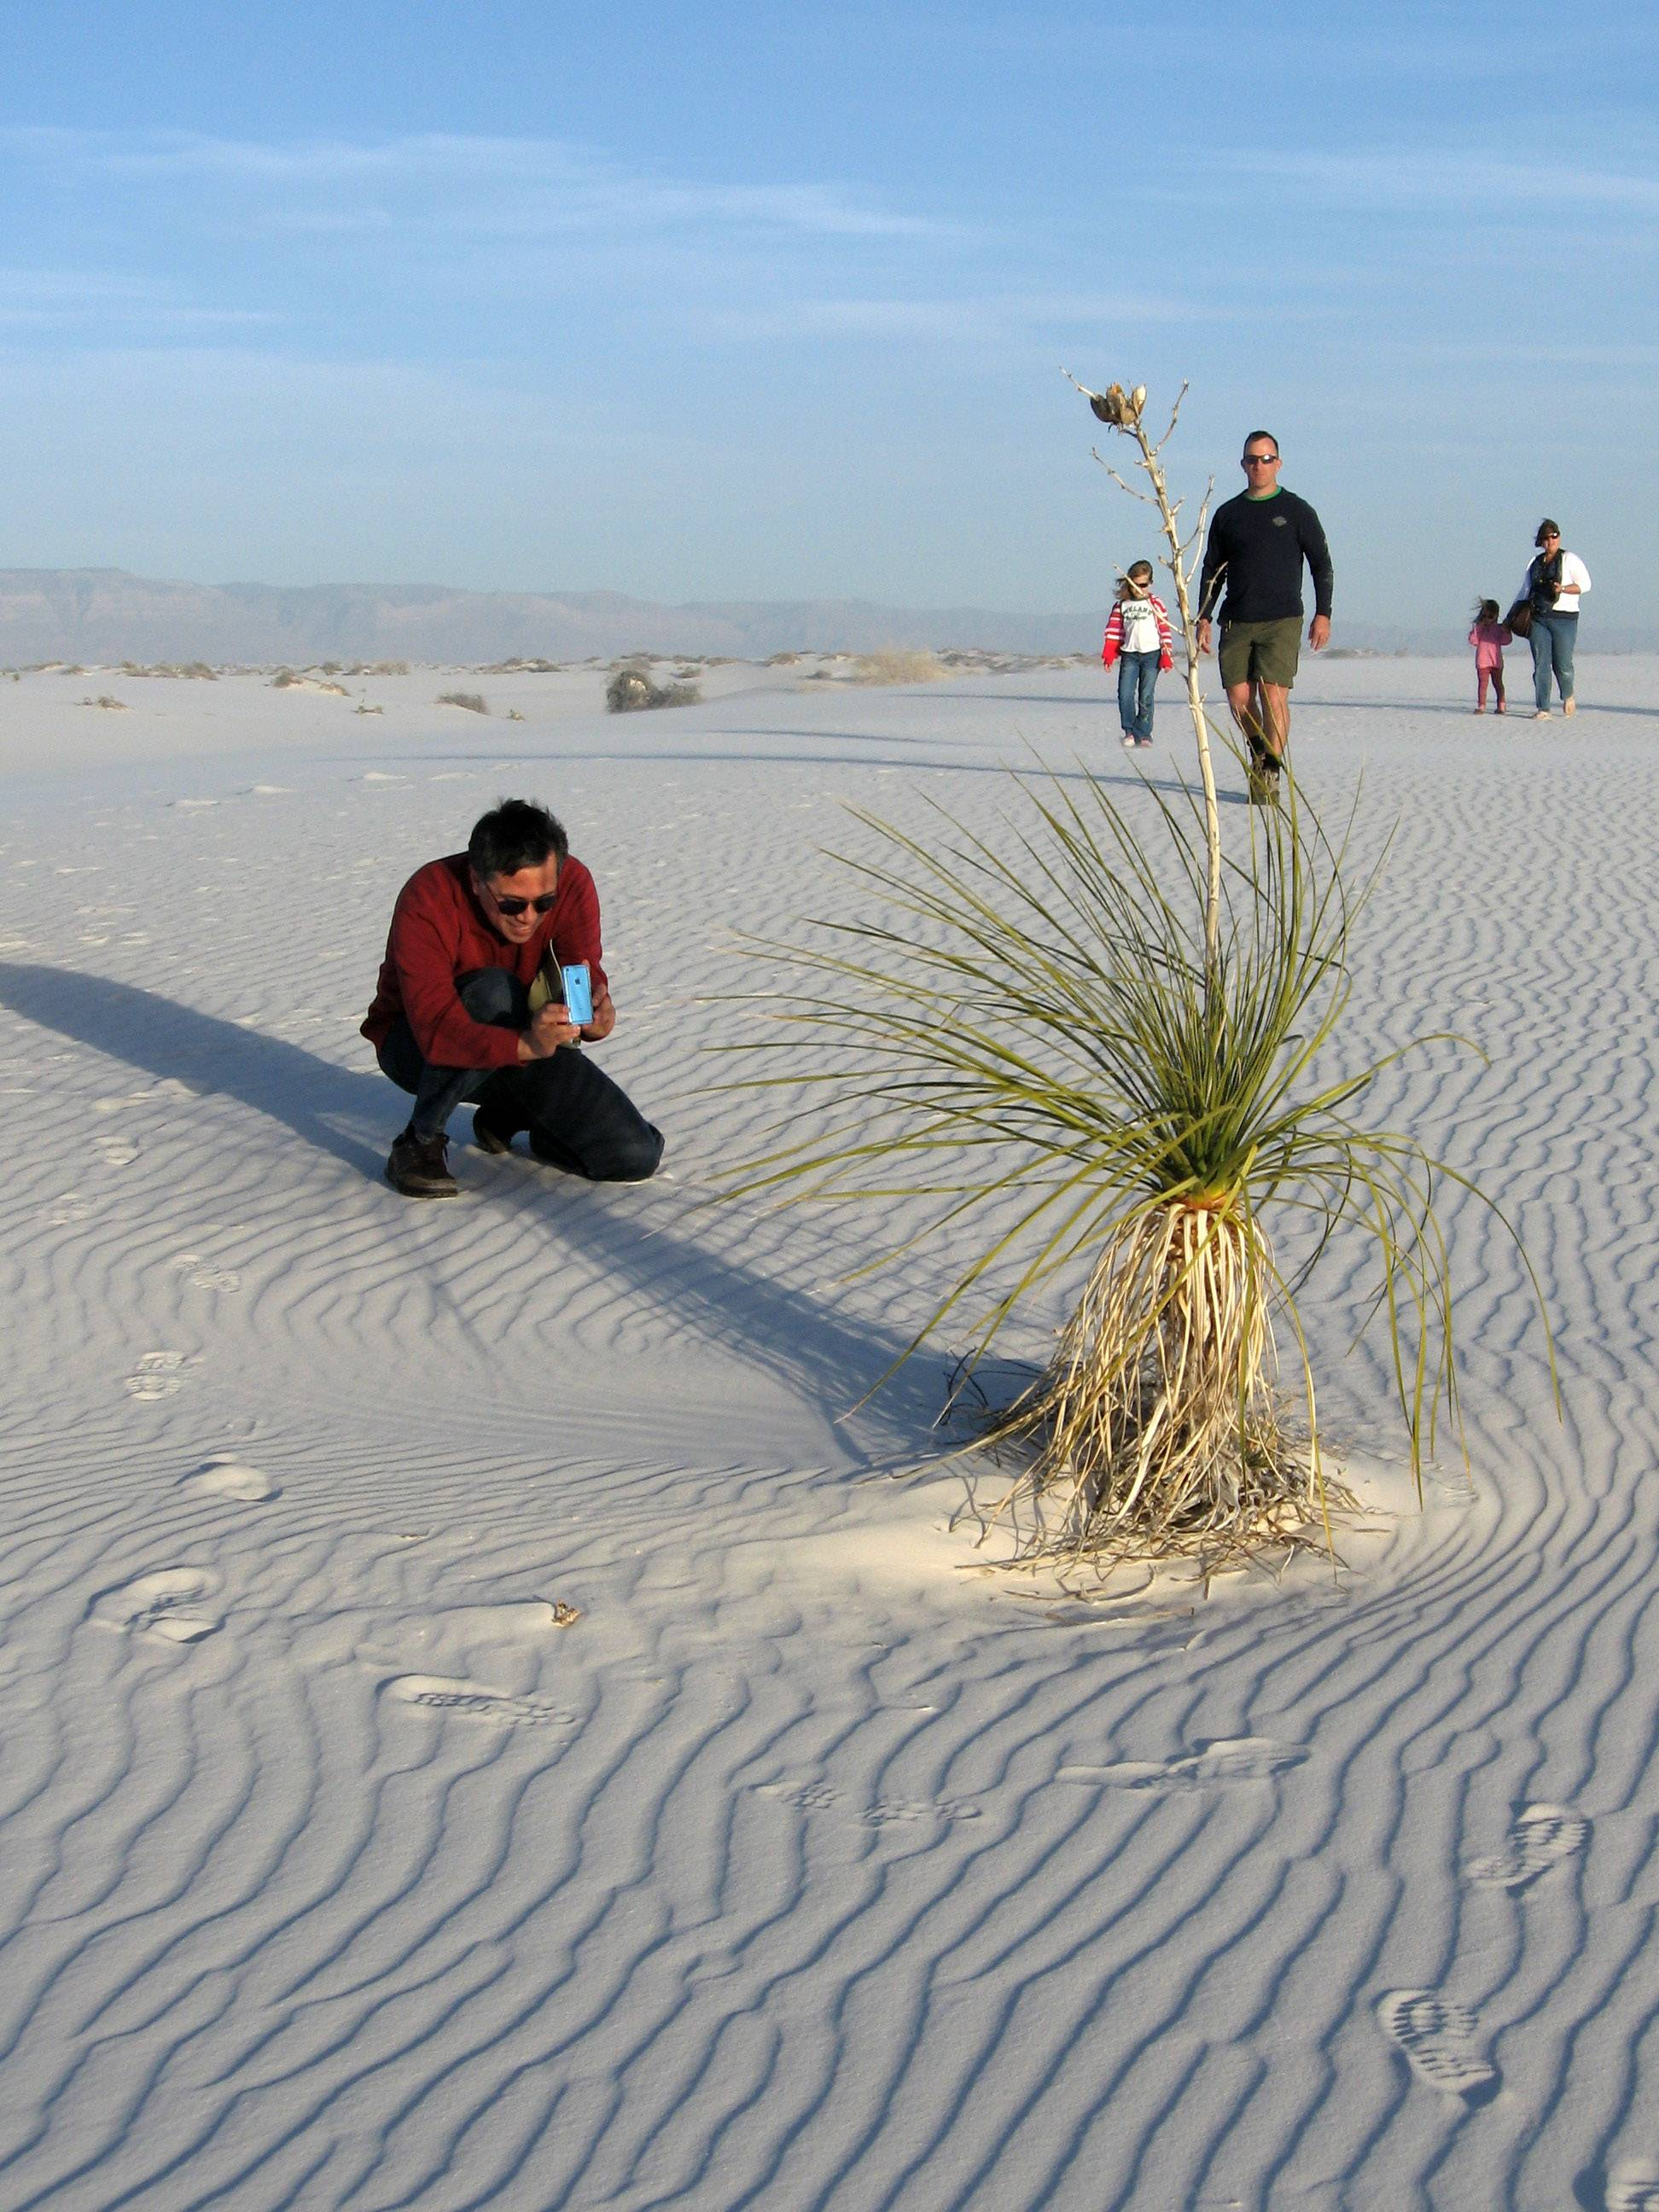 Visitors on a ranger-led hike in White Sands National Monument in New Mexico examine a yucca plant while footprints punctuate the endless white sand desert.